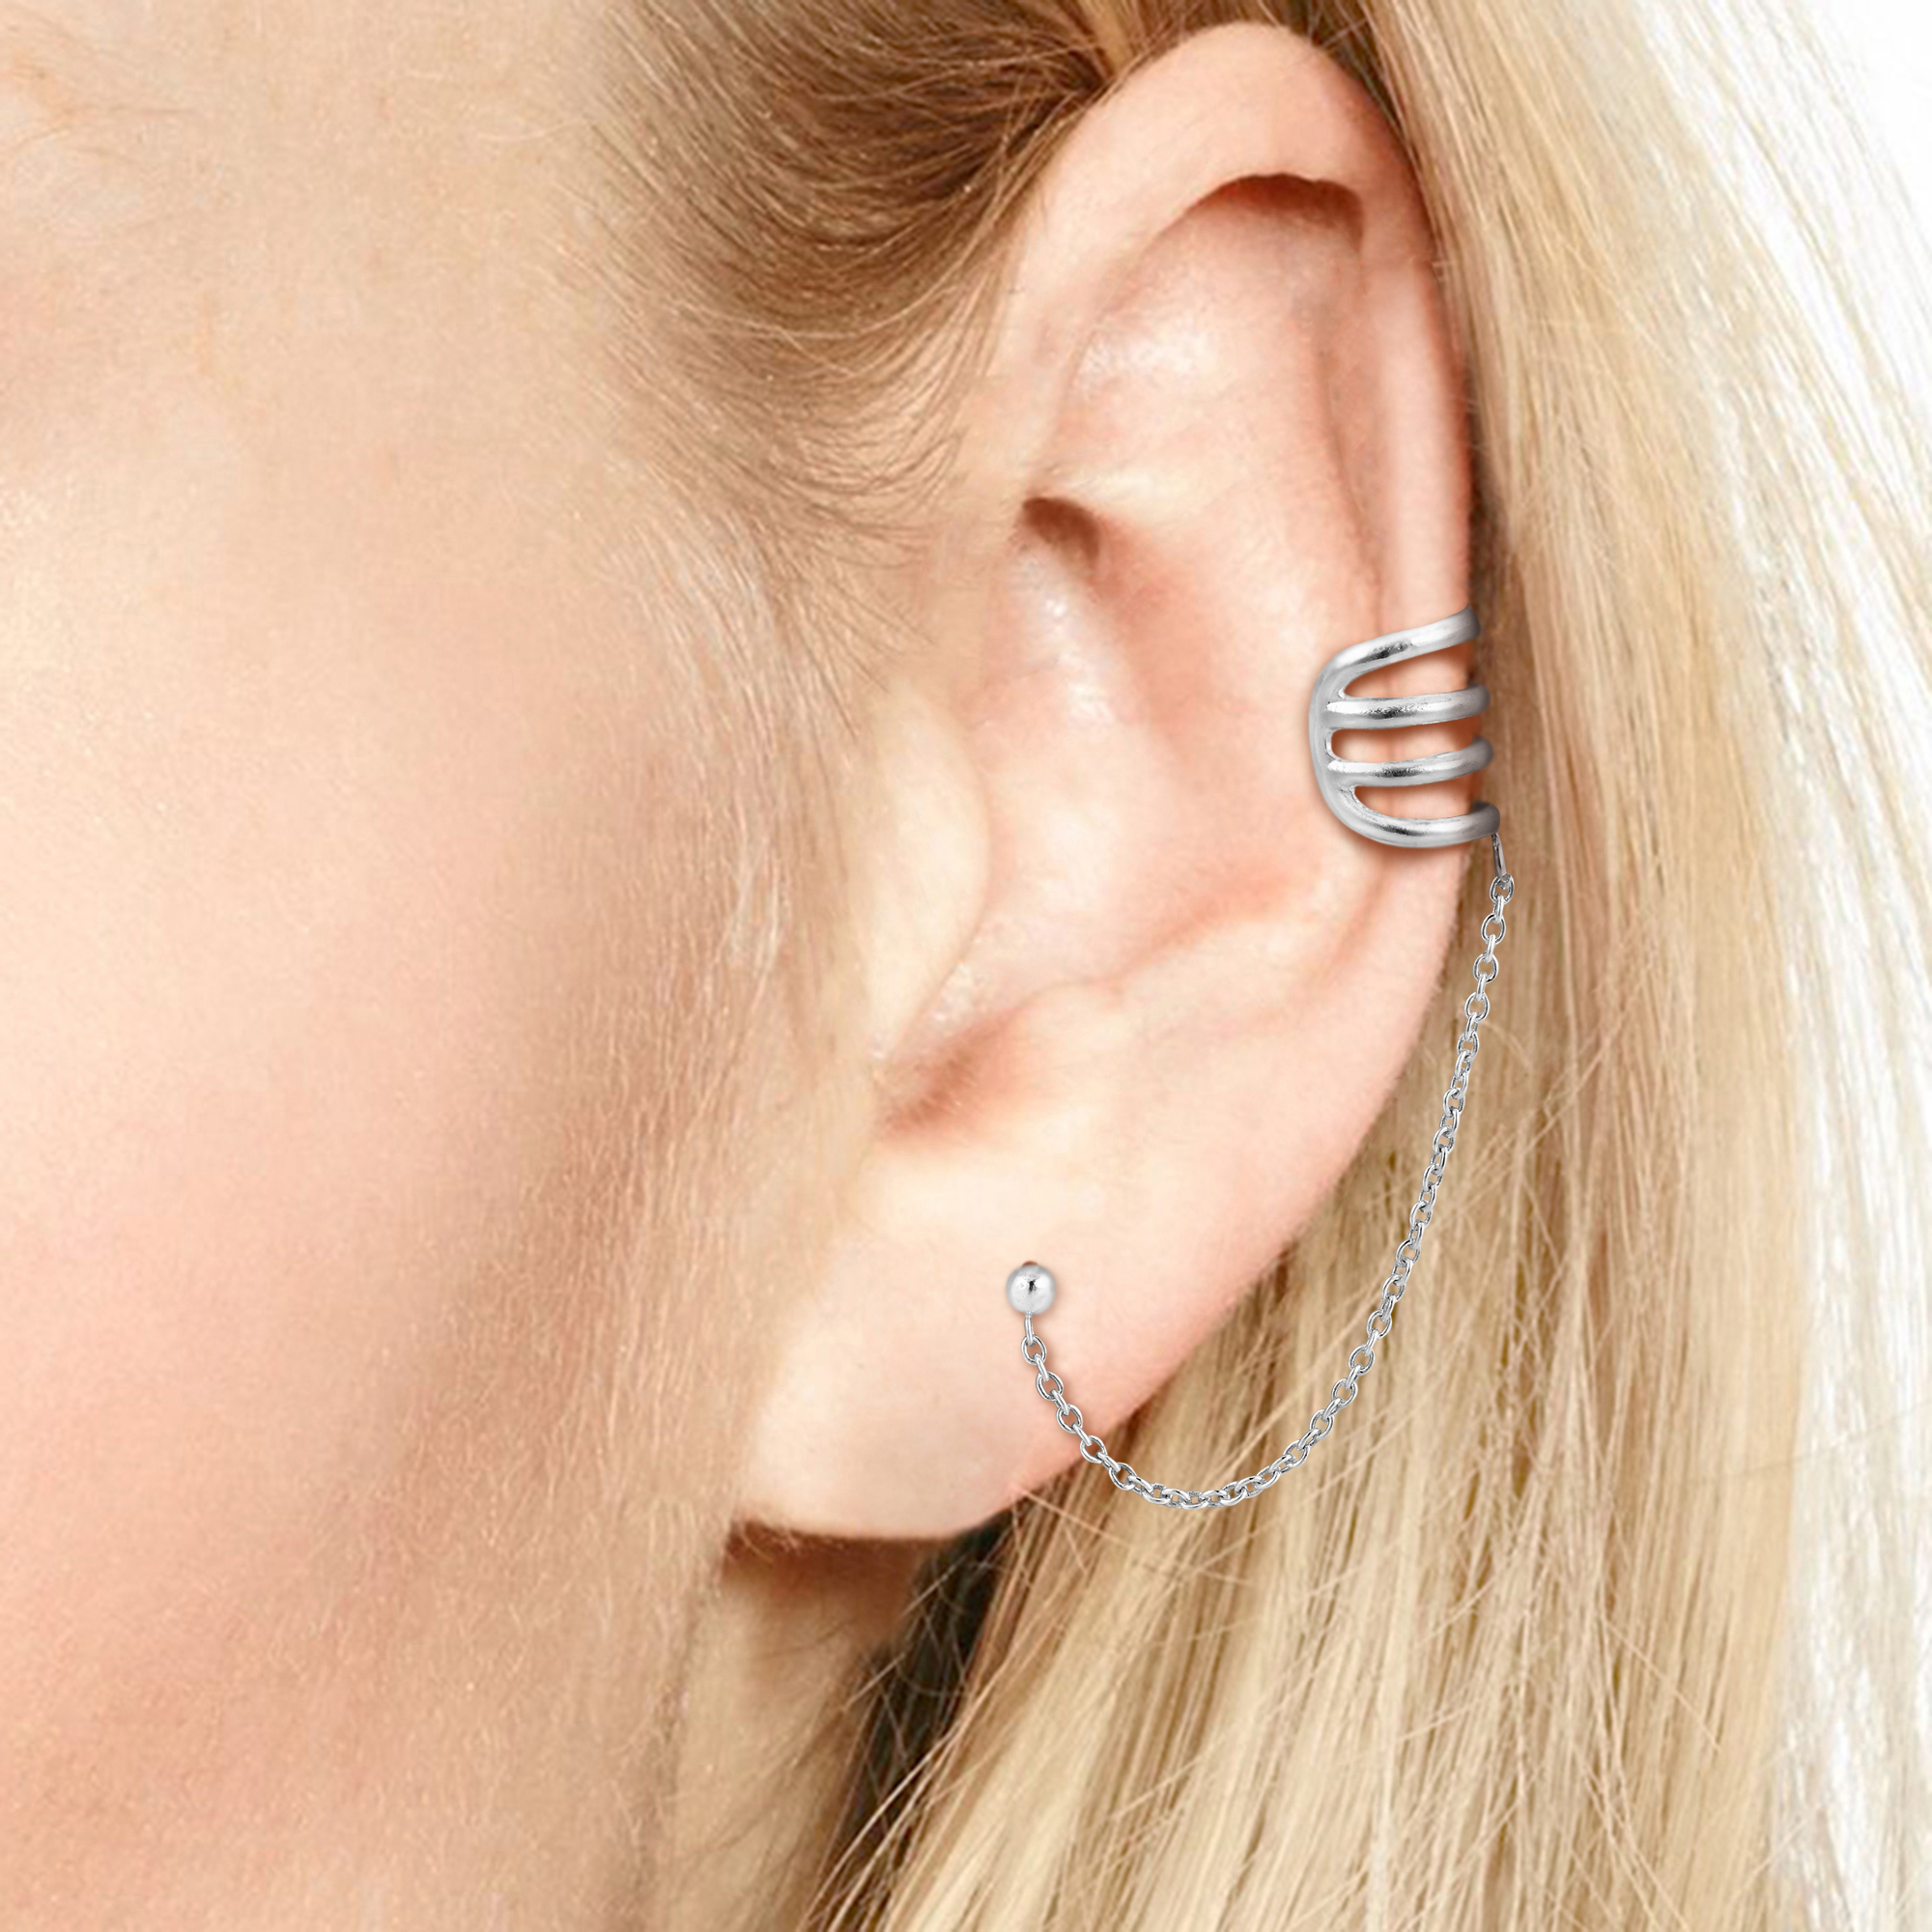 article wear xs com after post fotolia pierced ears type livestrong to getting earrings